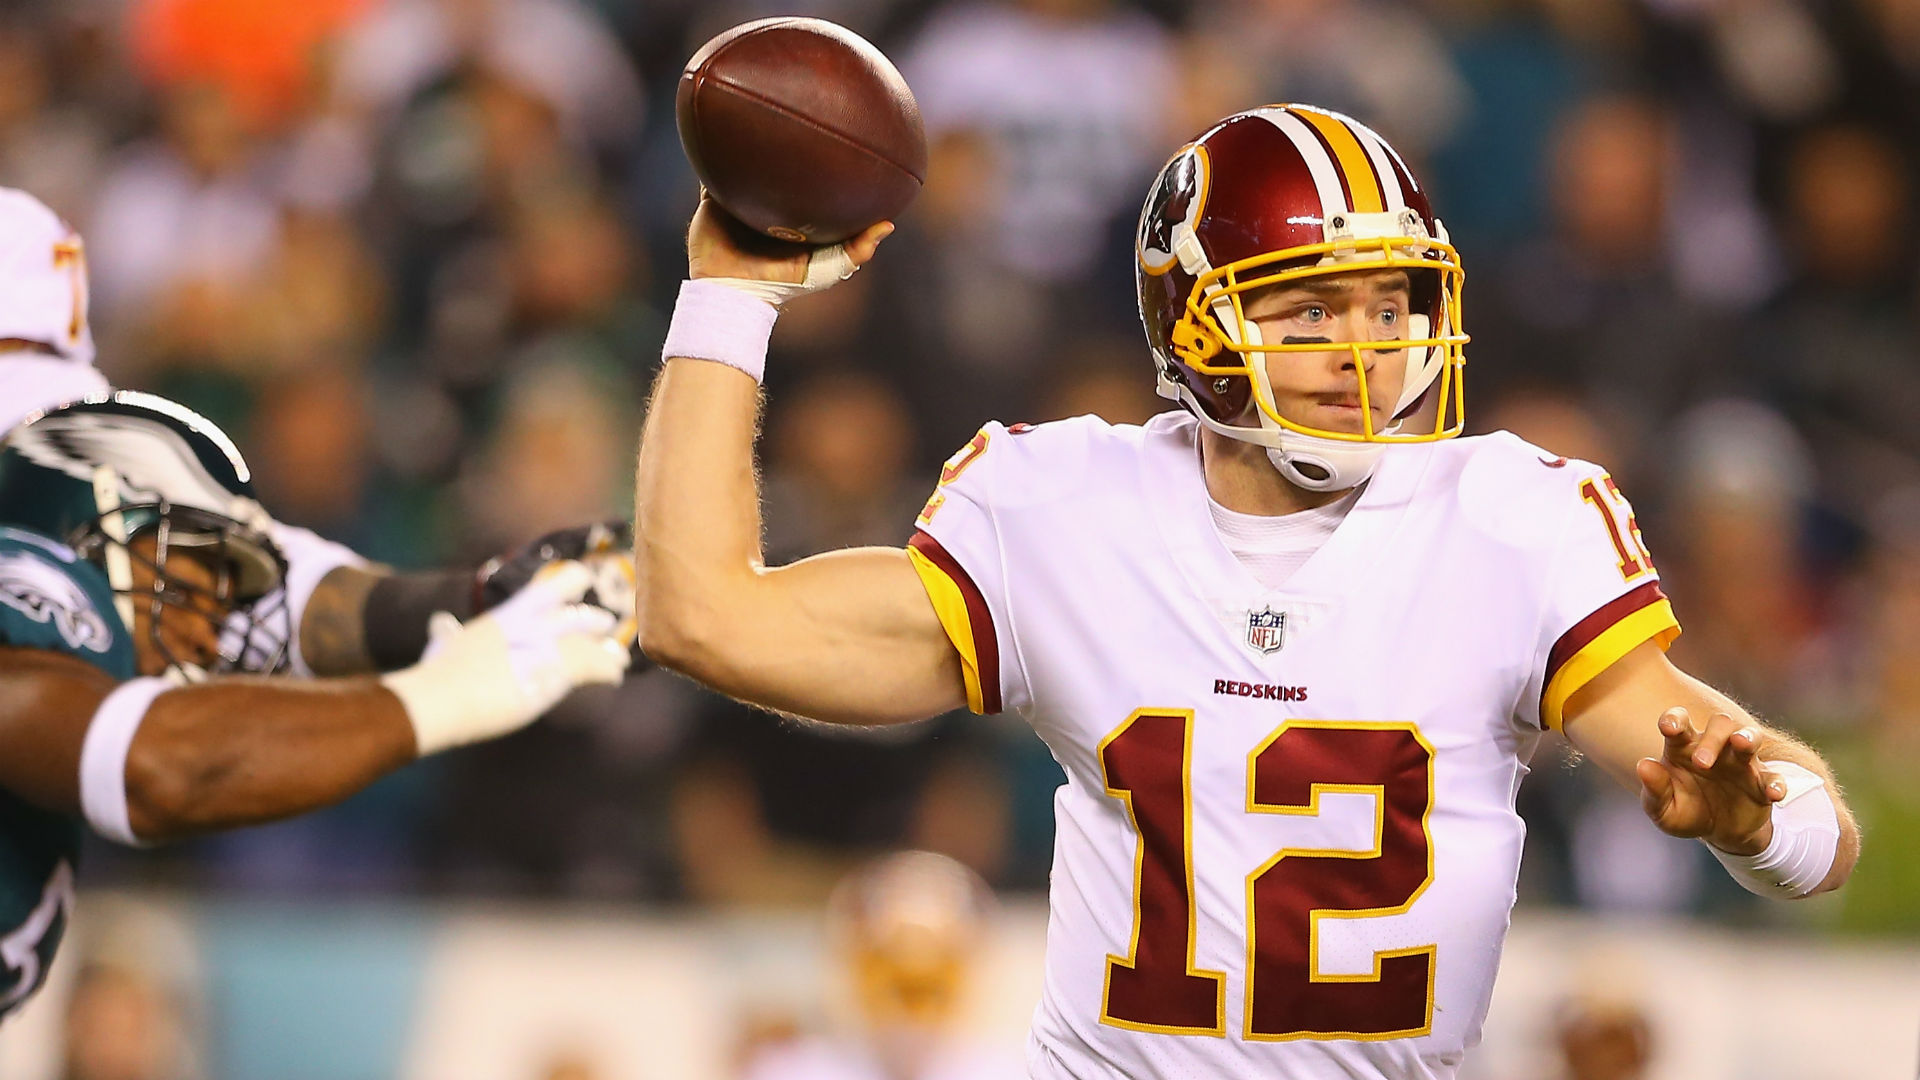 Colt McCoy injury update: Redskins QB (broken leg) to be fully ready for training camp, report says